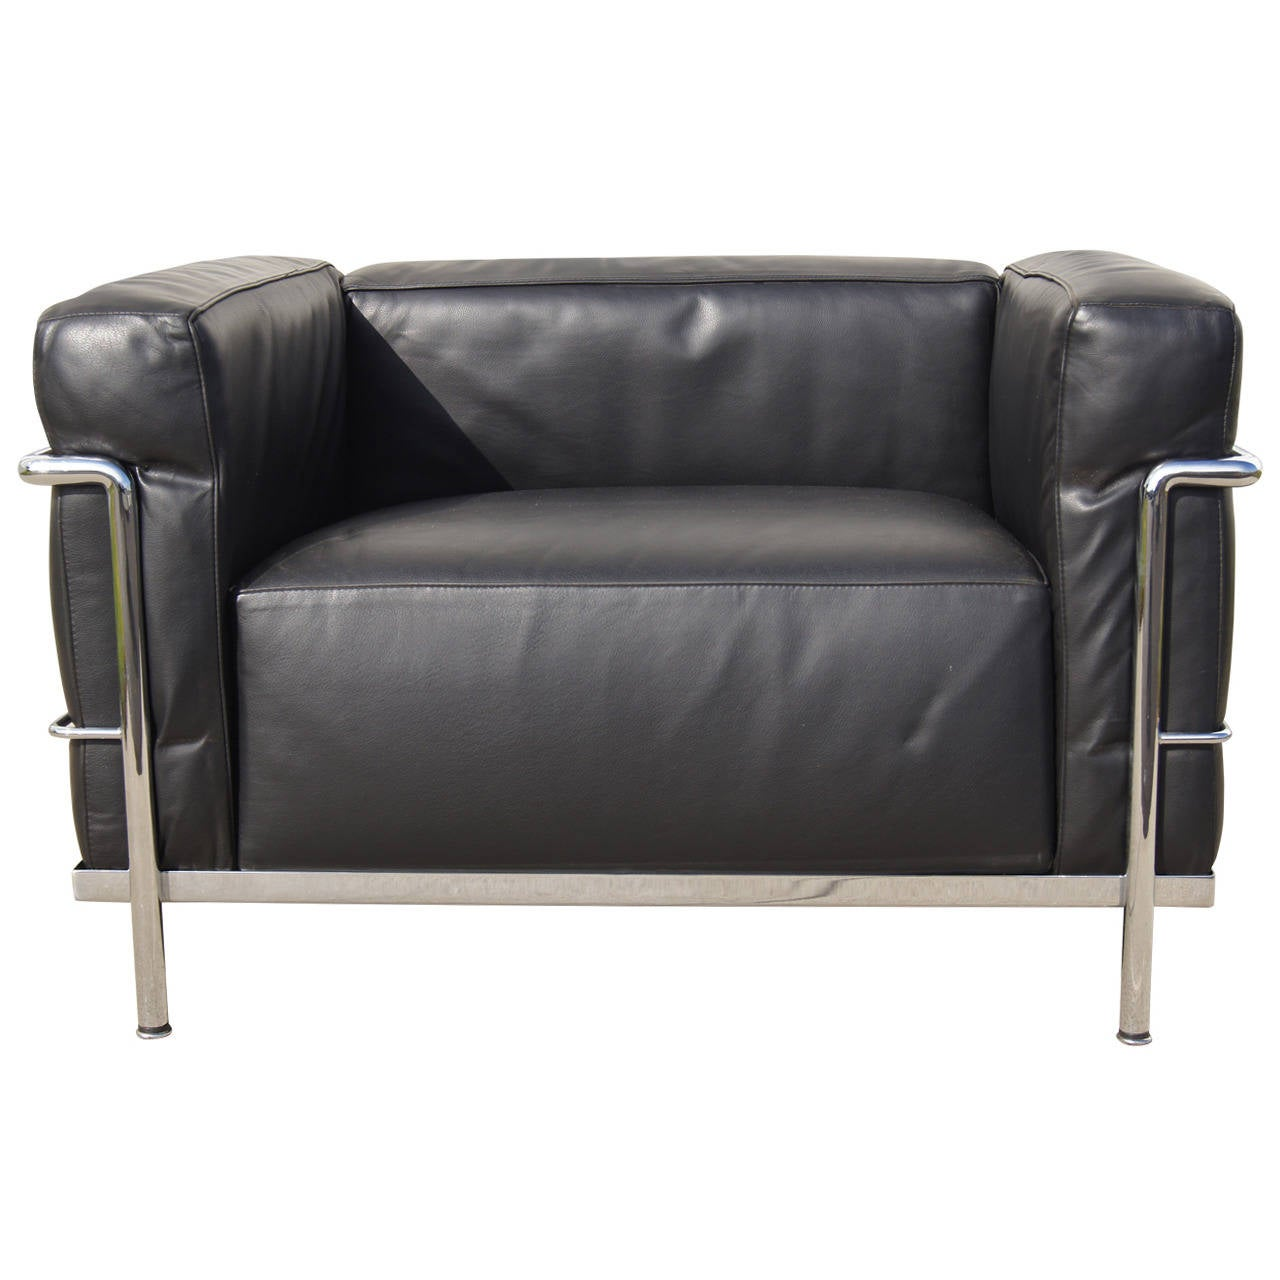 Lc3 Grand Confort Lounge Chair By Le Corbusier For